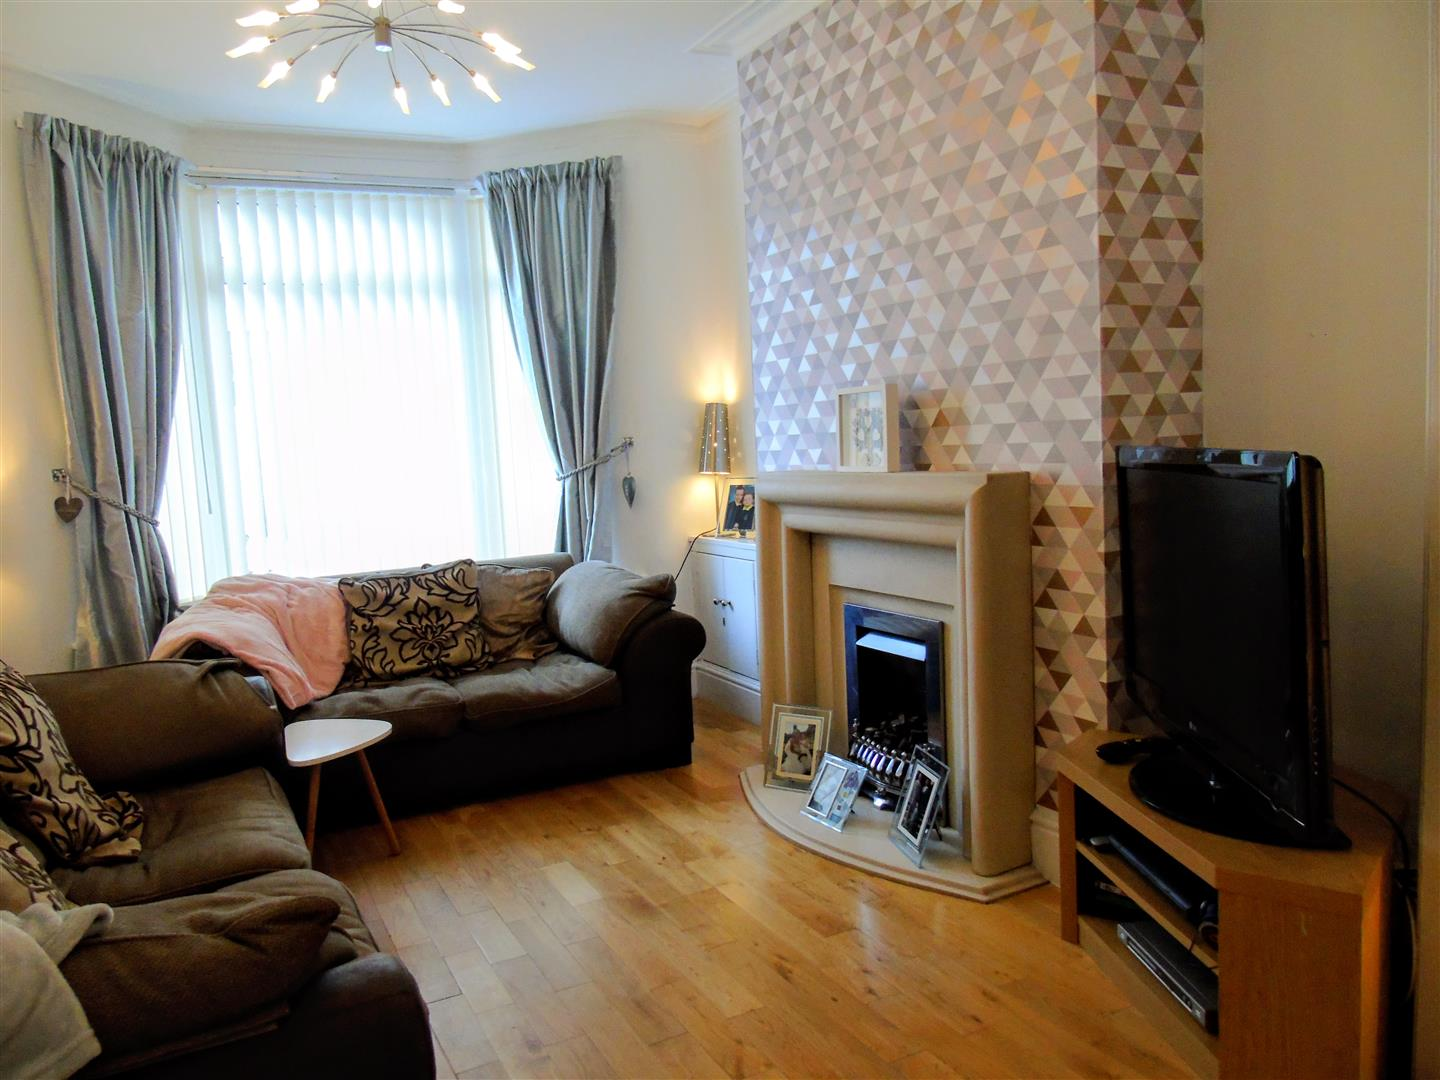 3 Bedrooms, House - Terraced, Clapham Road, Liverpool